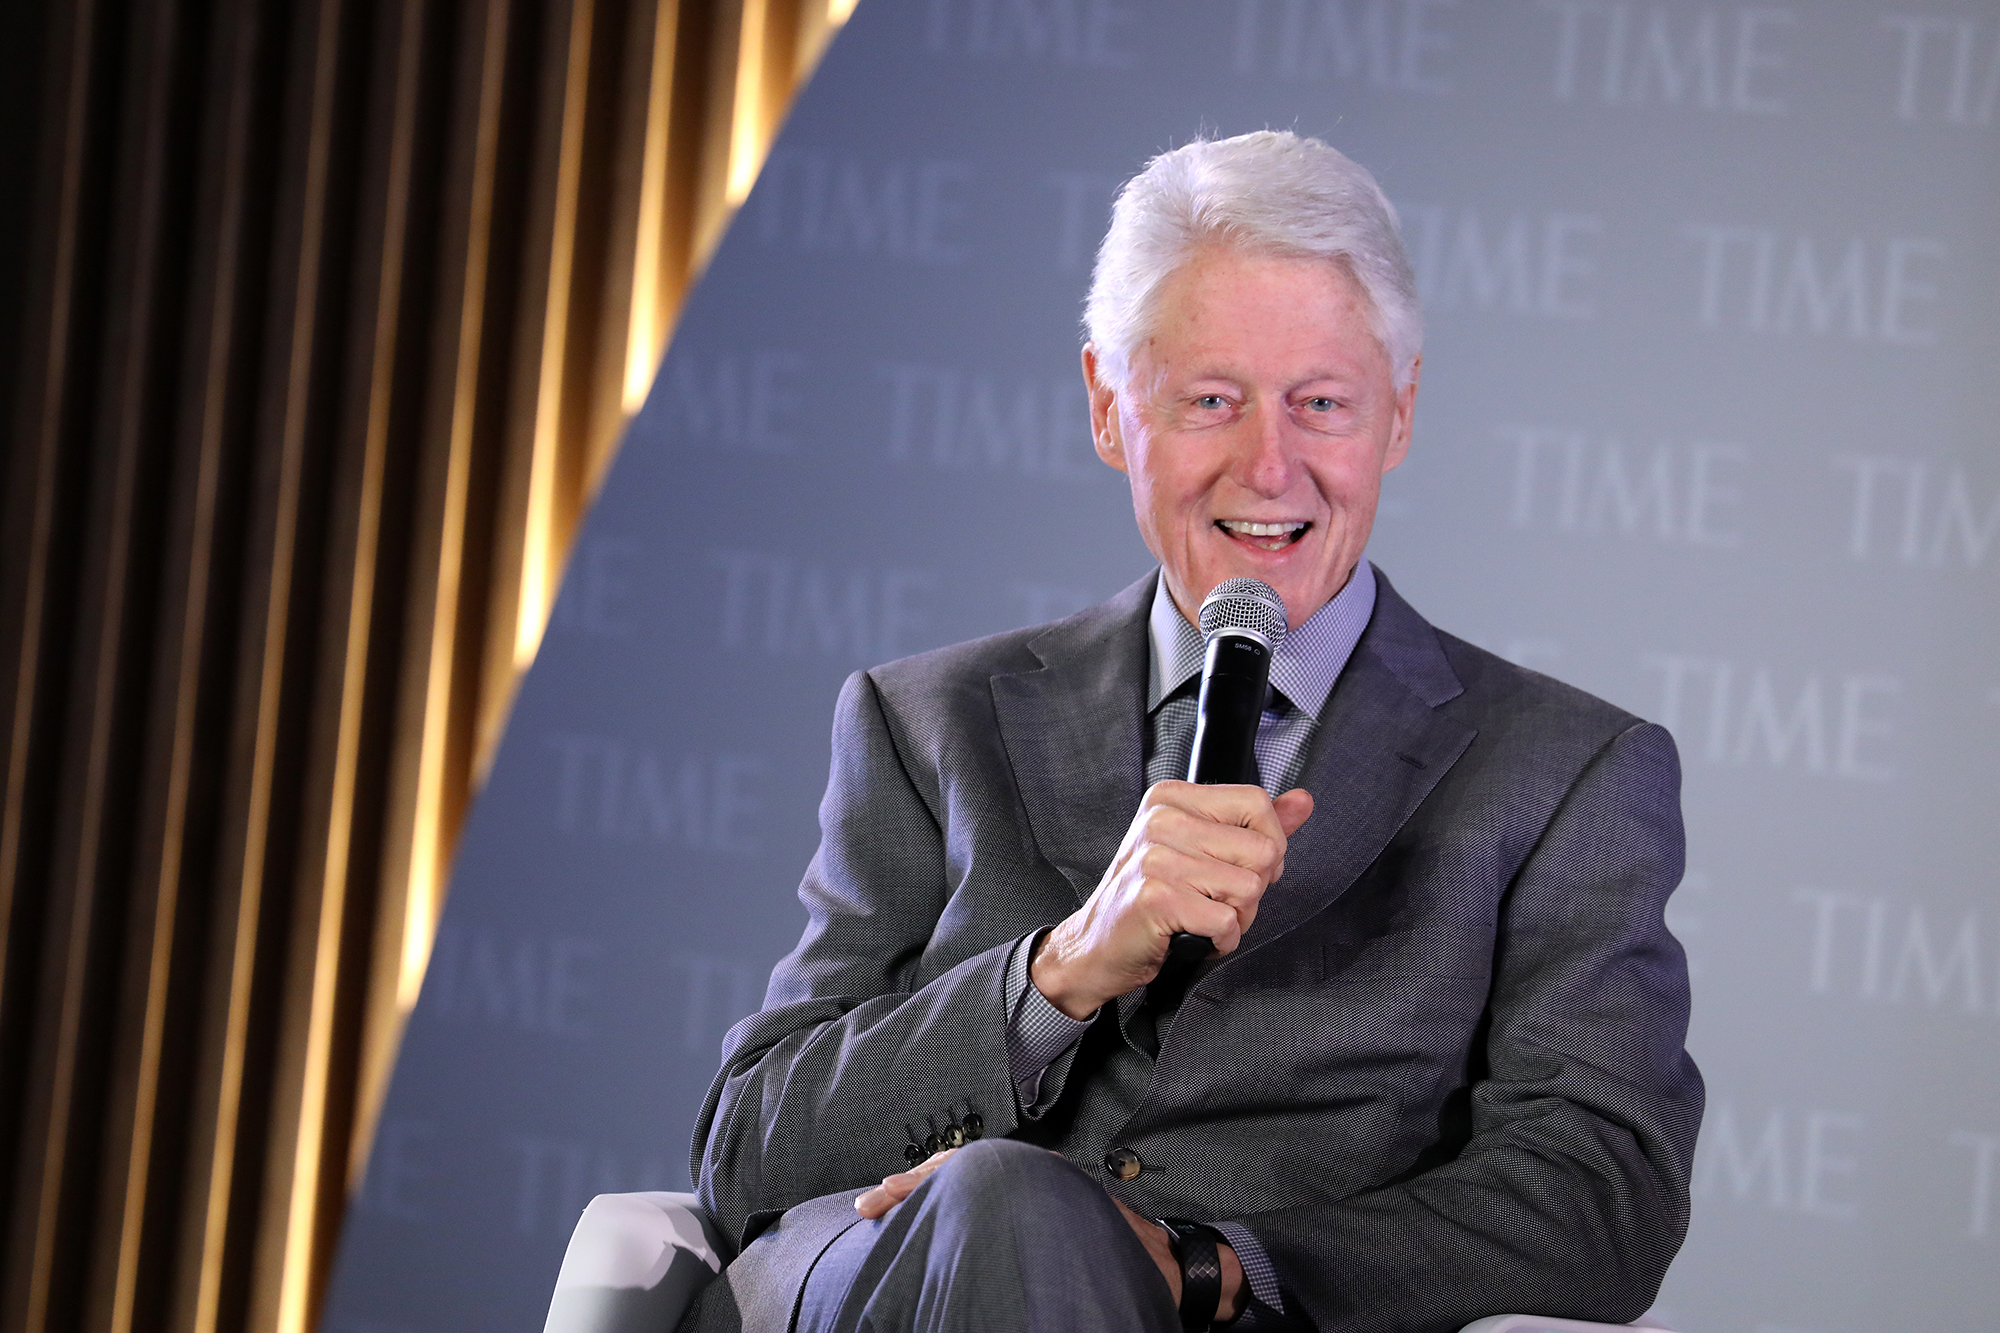 Former U.S. President Bill Clinton speaks onstage during the TIME 100 Health Summit at Pier 17 on October 17, 2019 in New York.